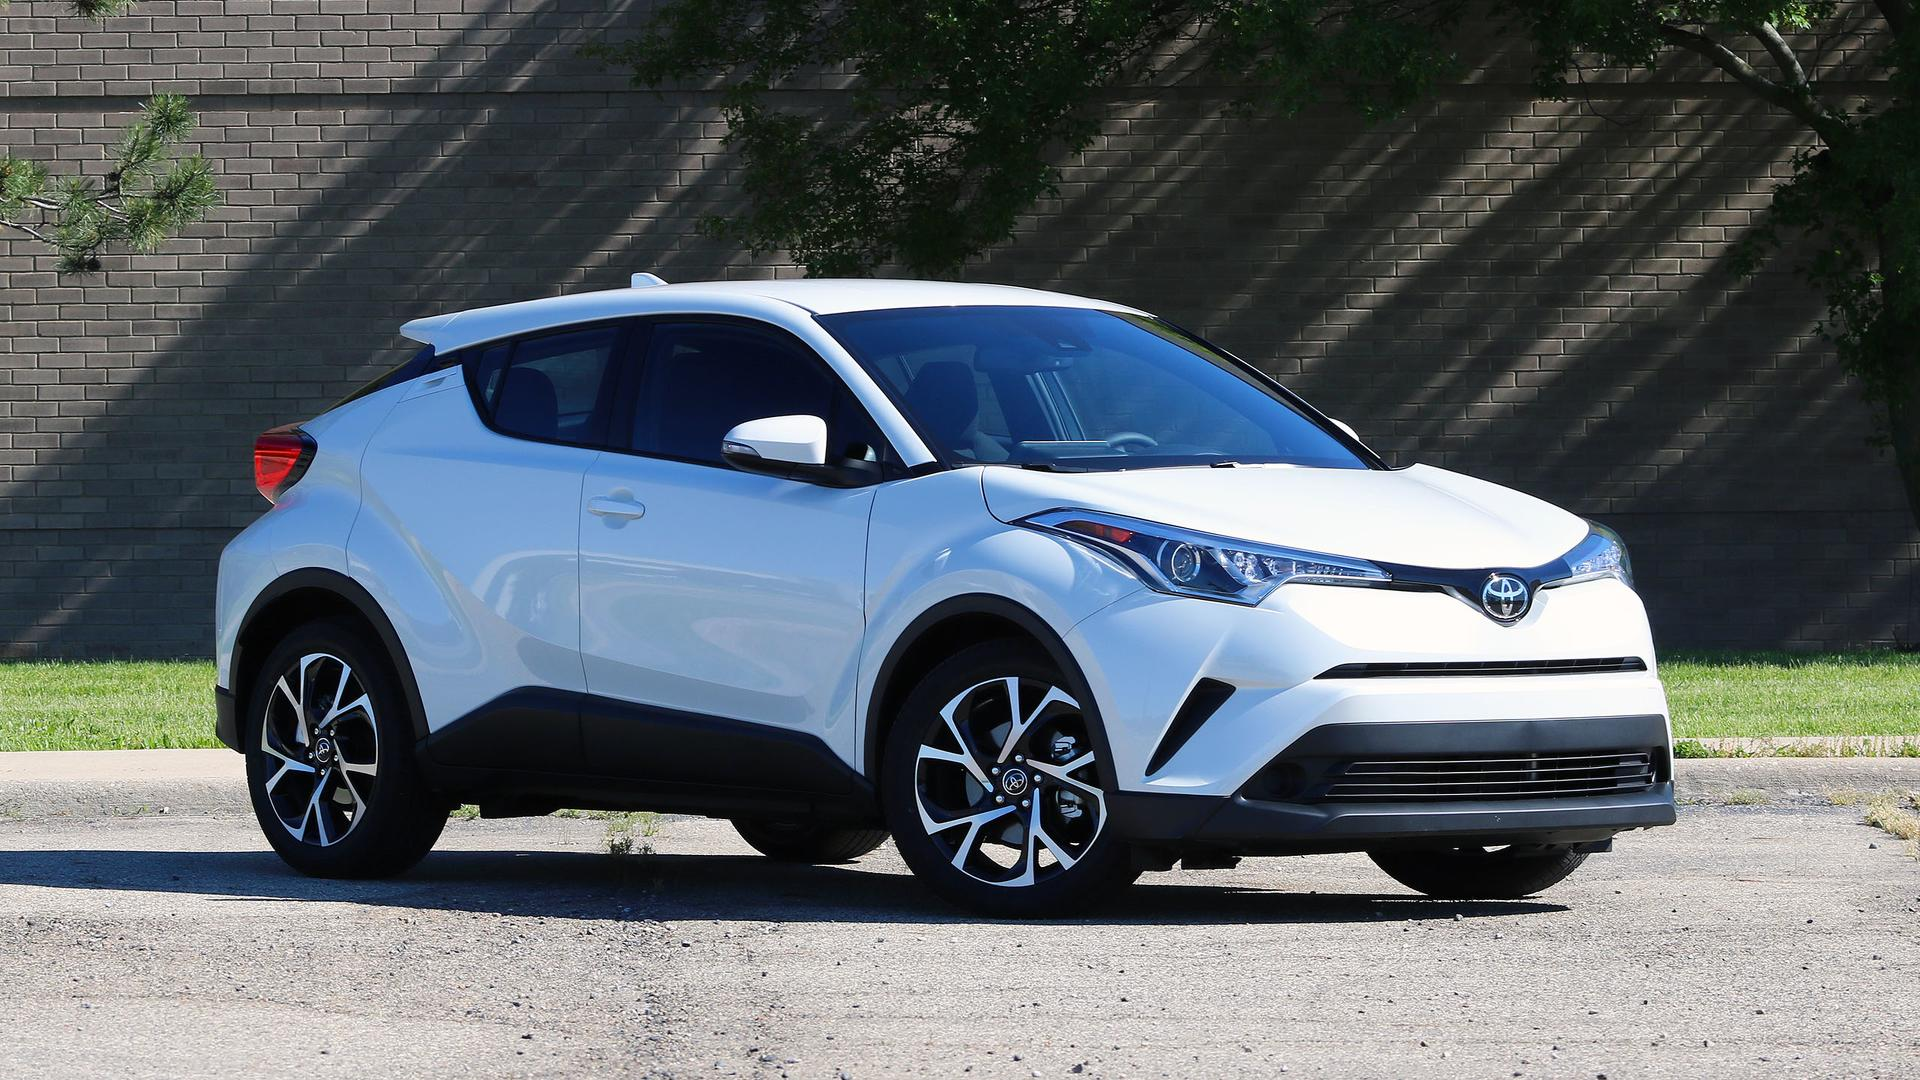 Toyota Rav4 Trd >> 2018 Toyota C-HR Review: Simply The Averagest